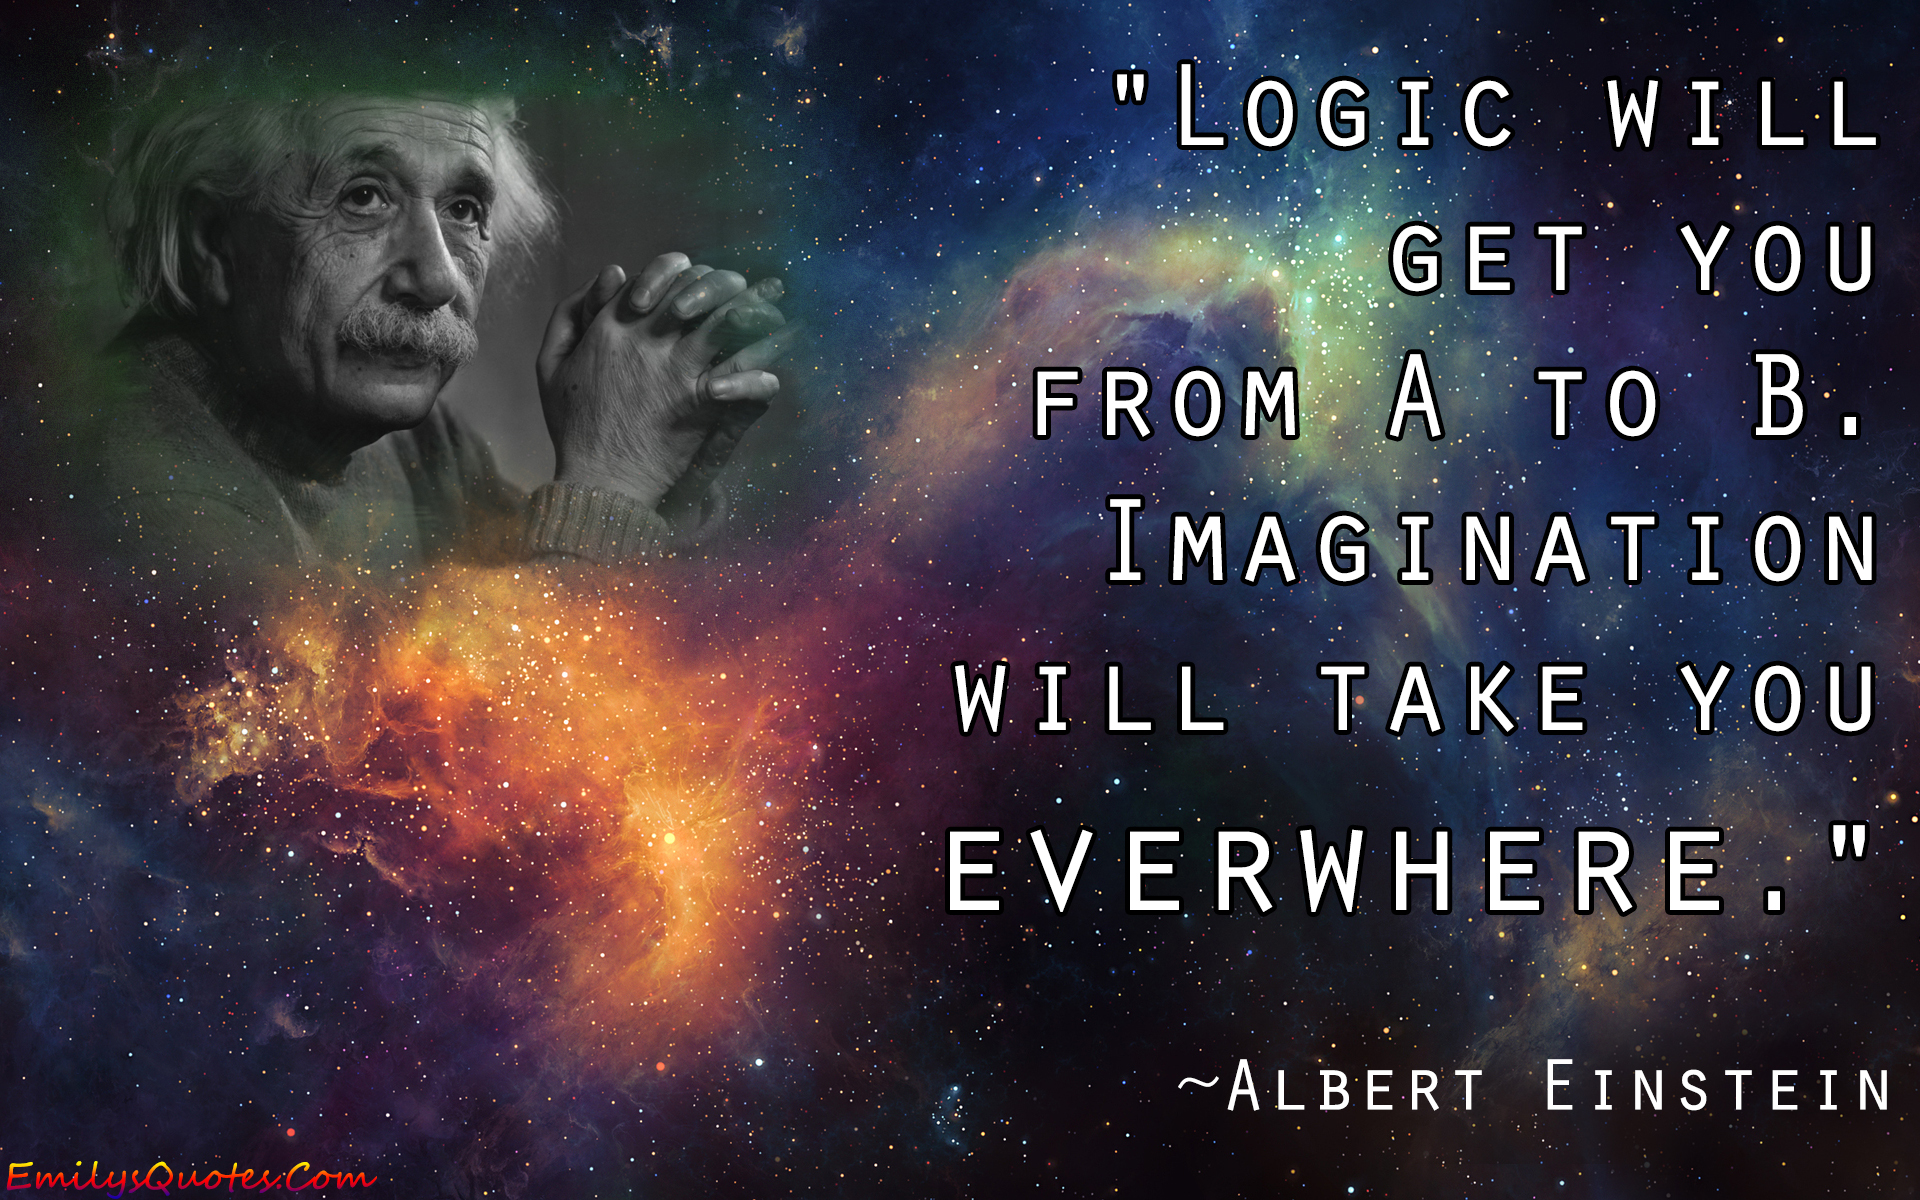 Logic will get you from a to be … imagination will take you everywhere.